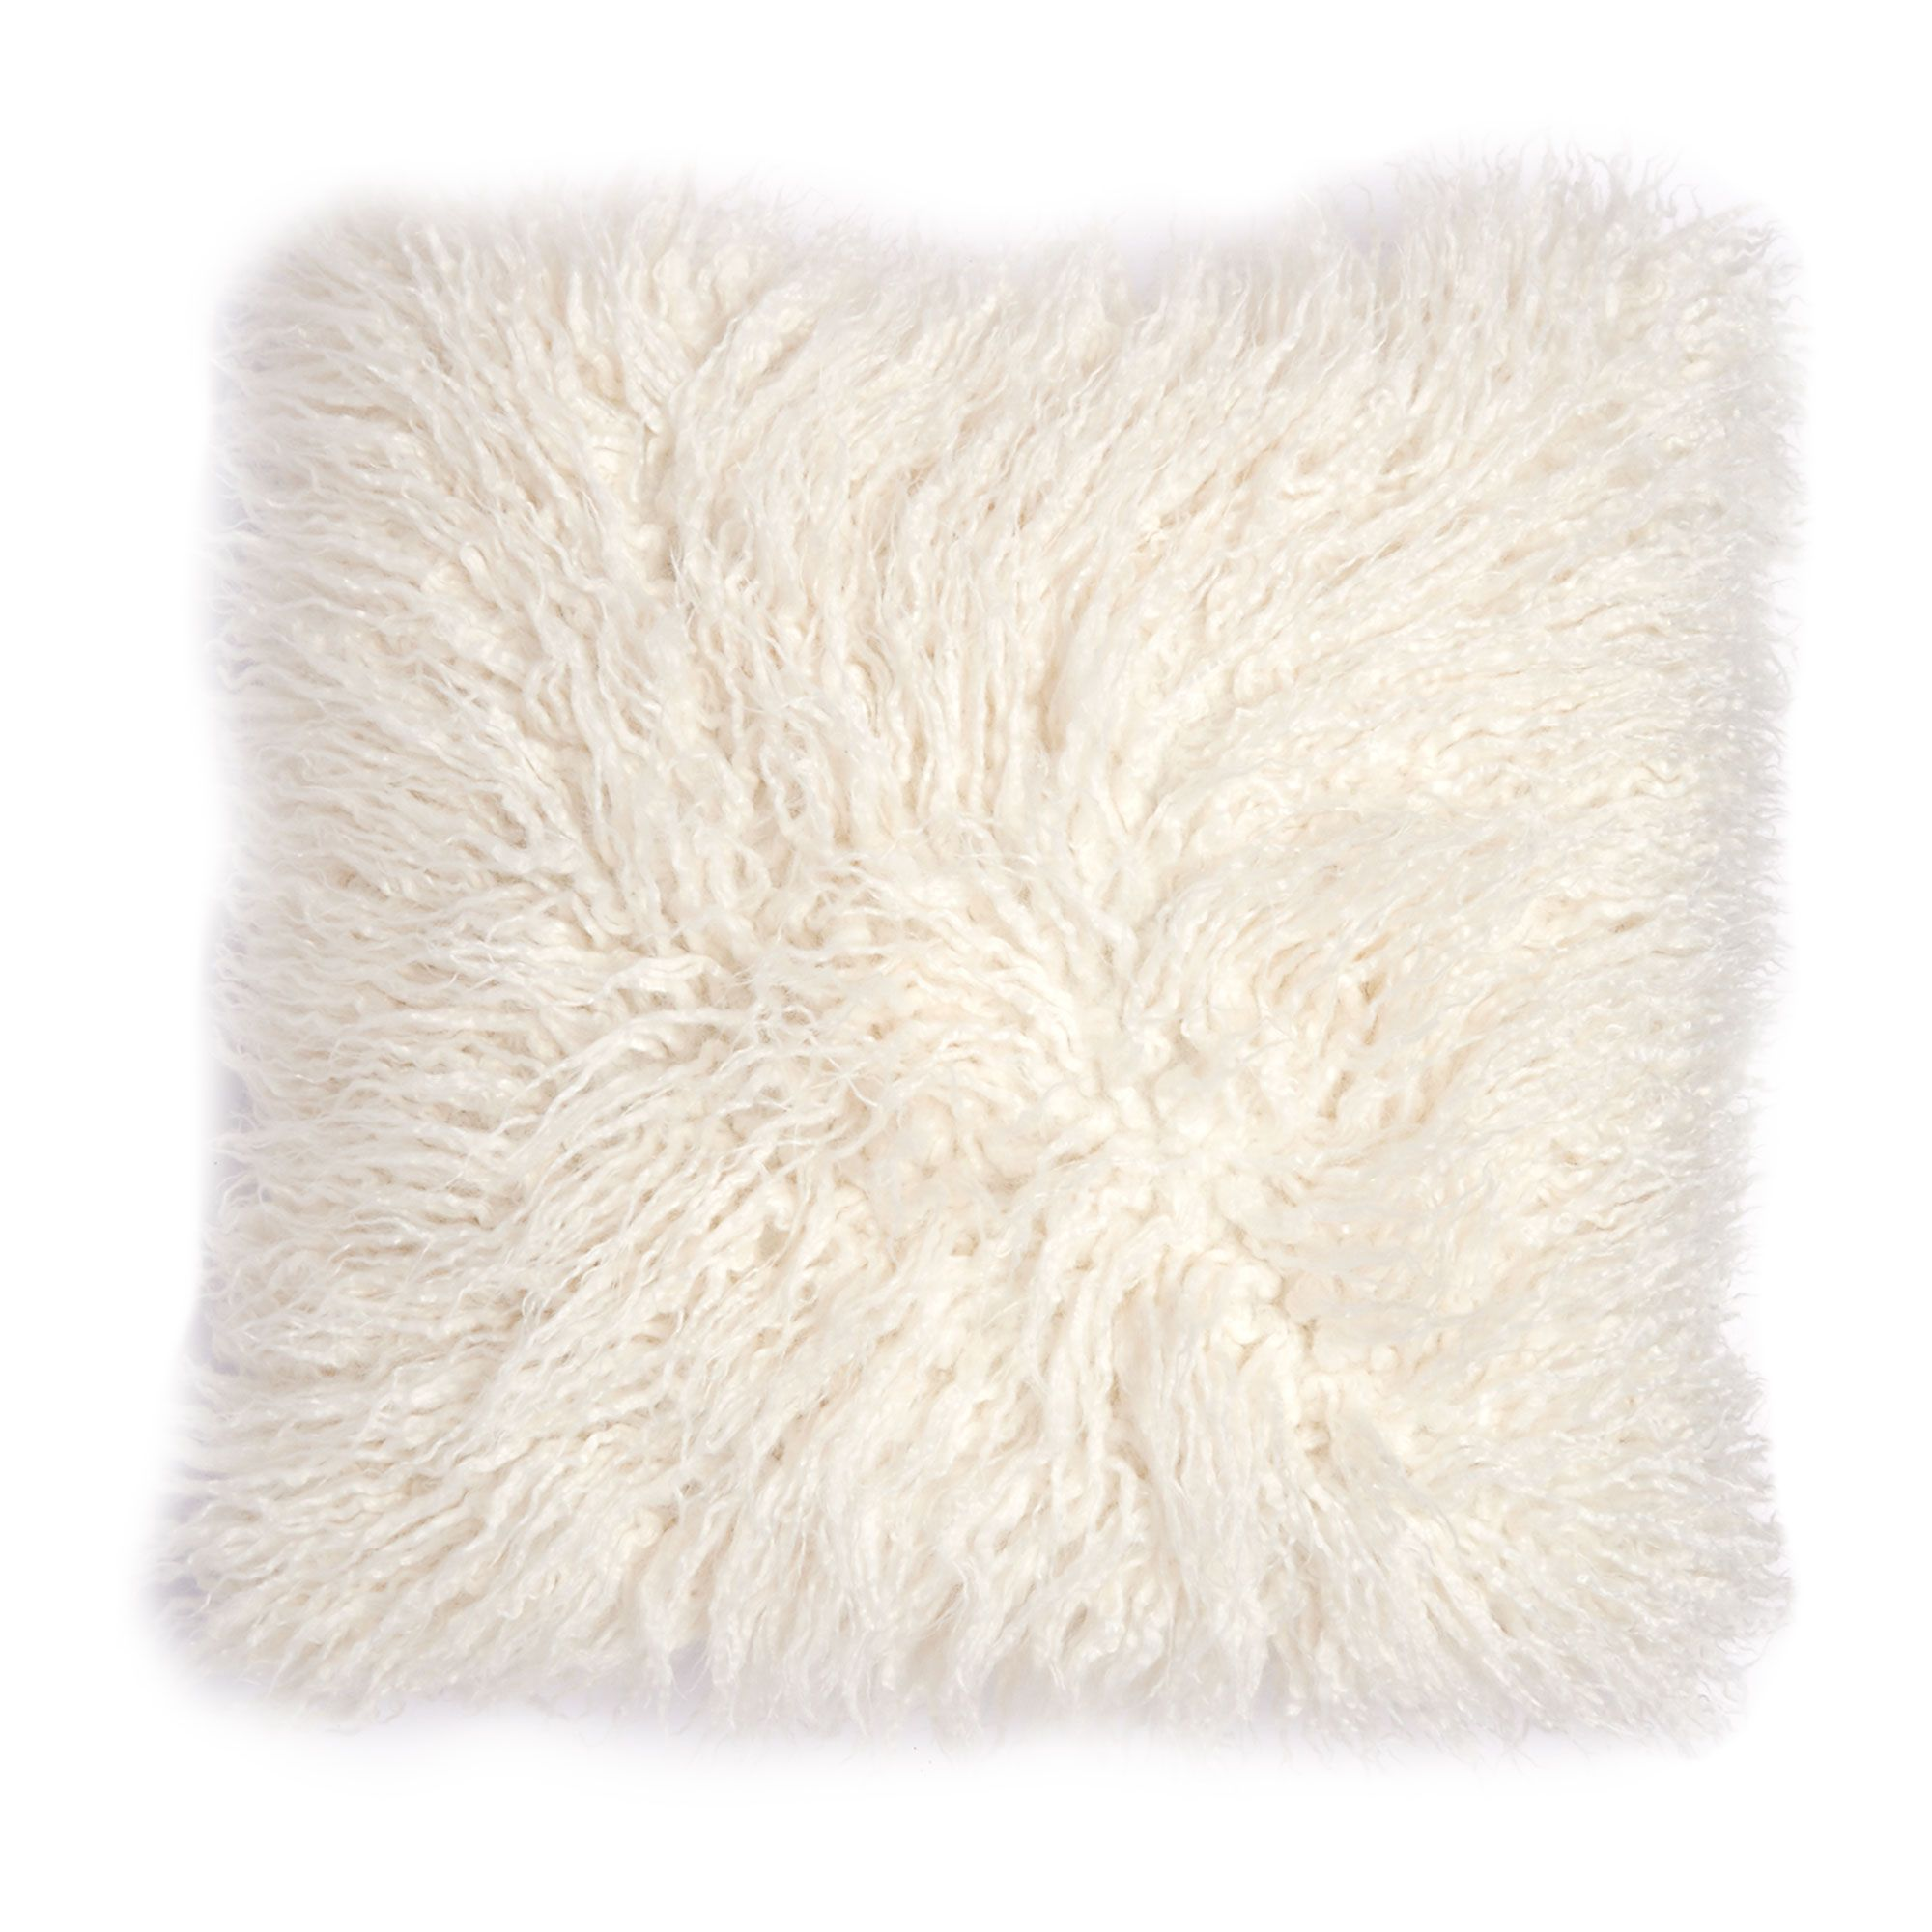 cover offset store pillow online pillows shine faux handmade c fur